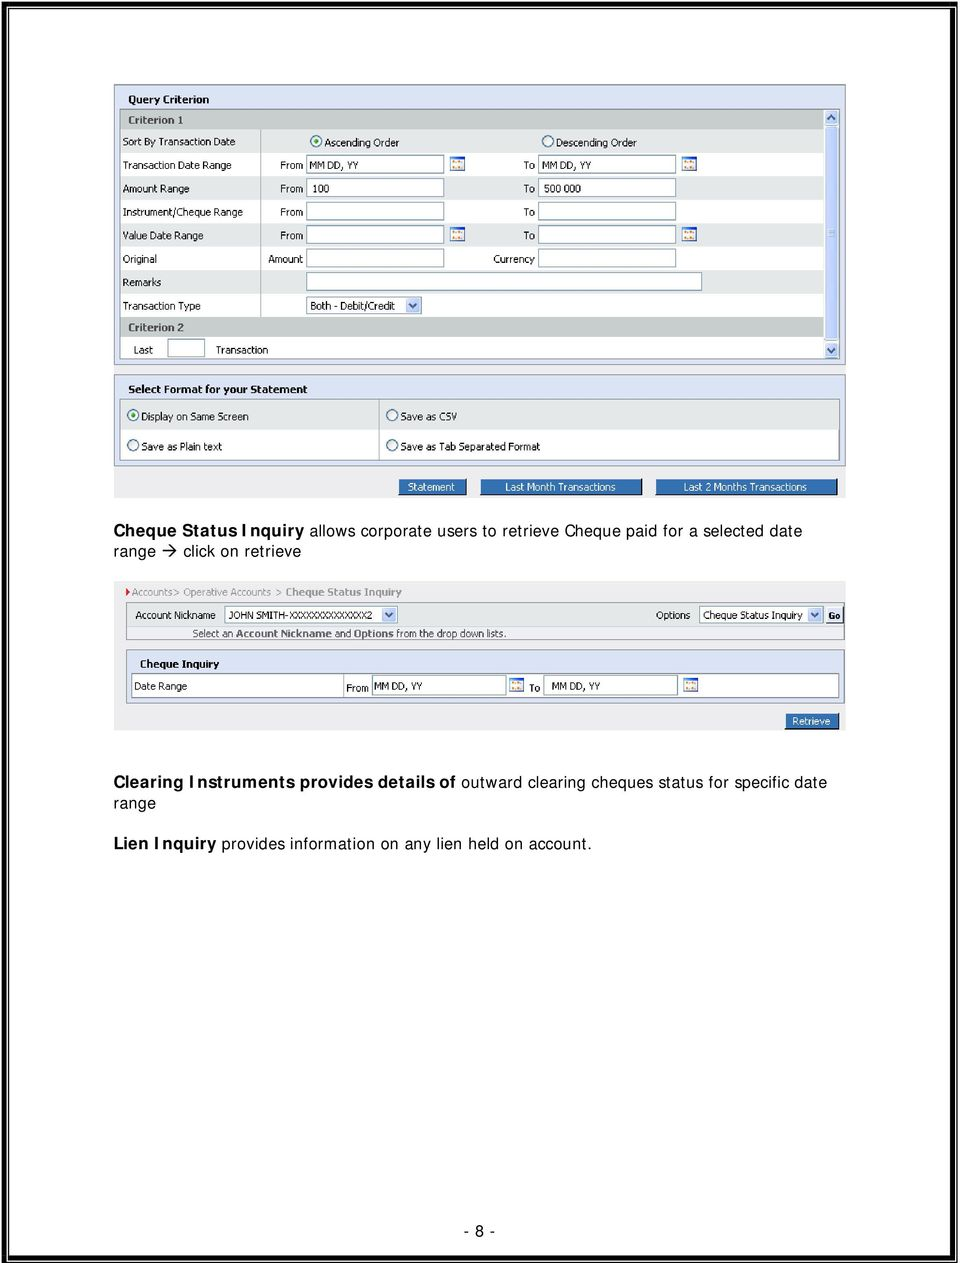 provides details of outward clearing cheques status for specific date